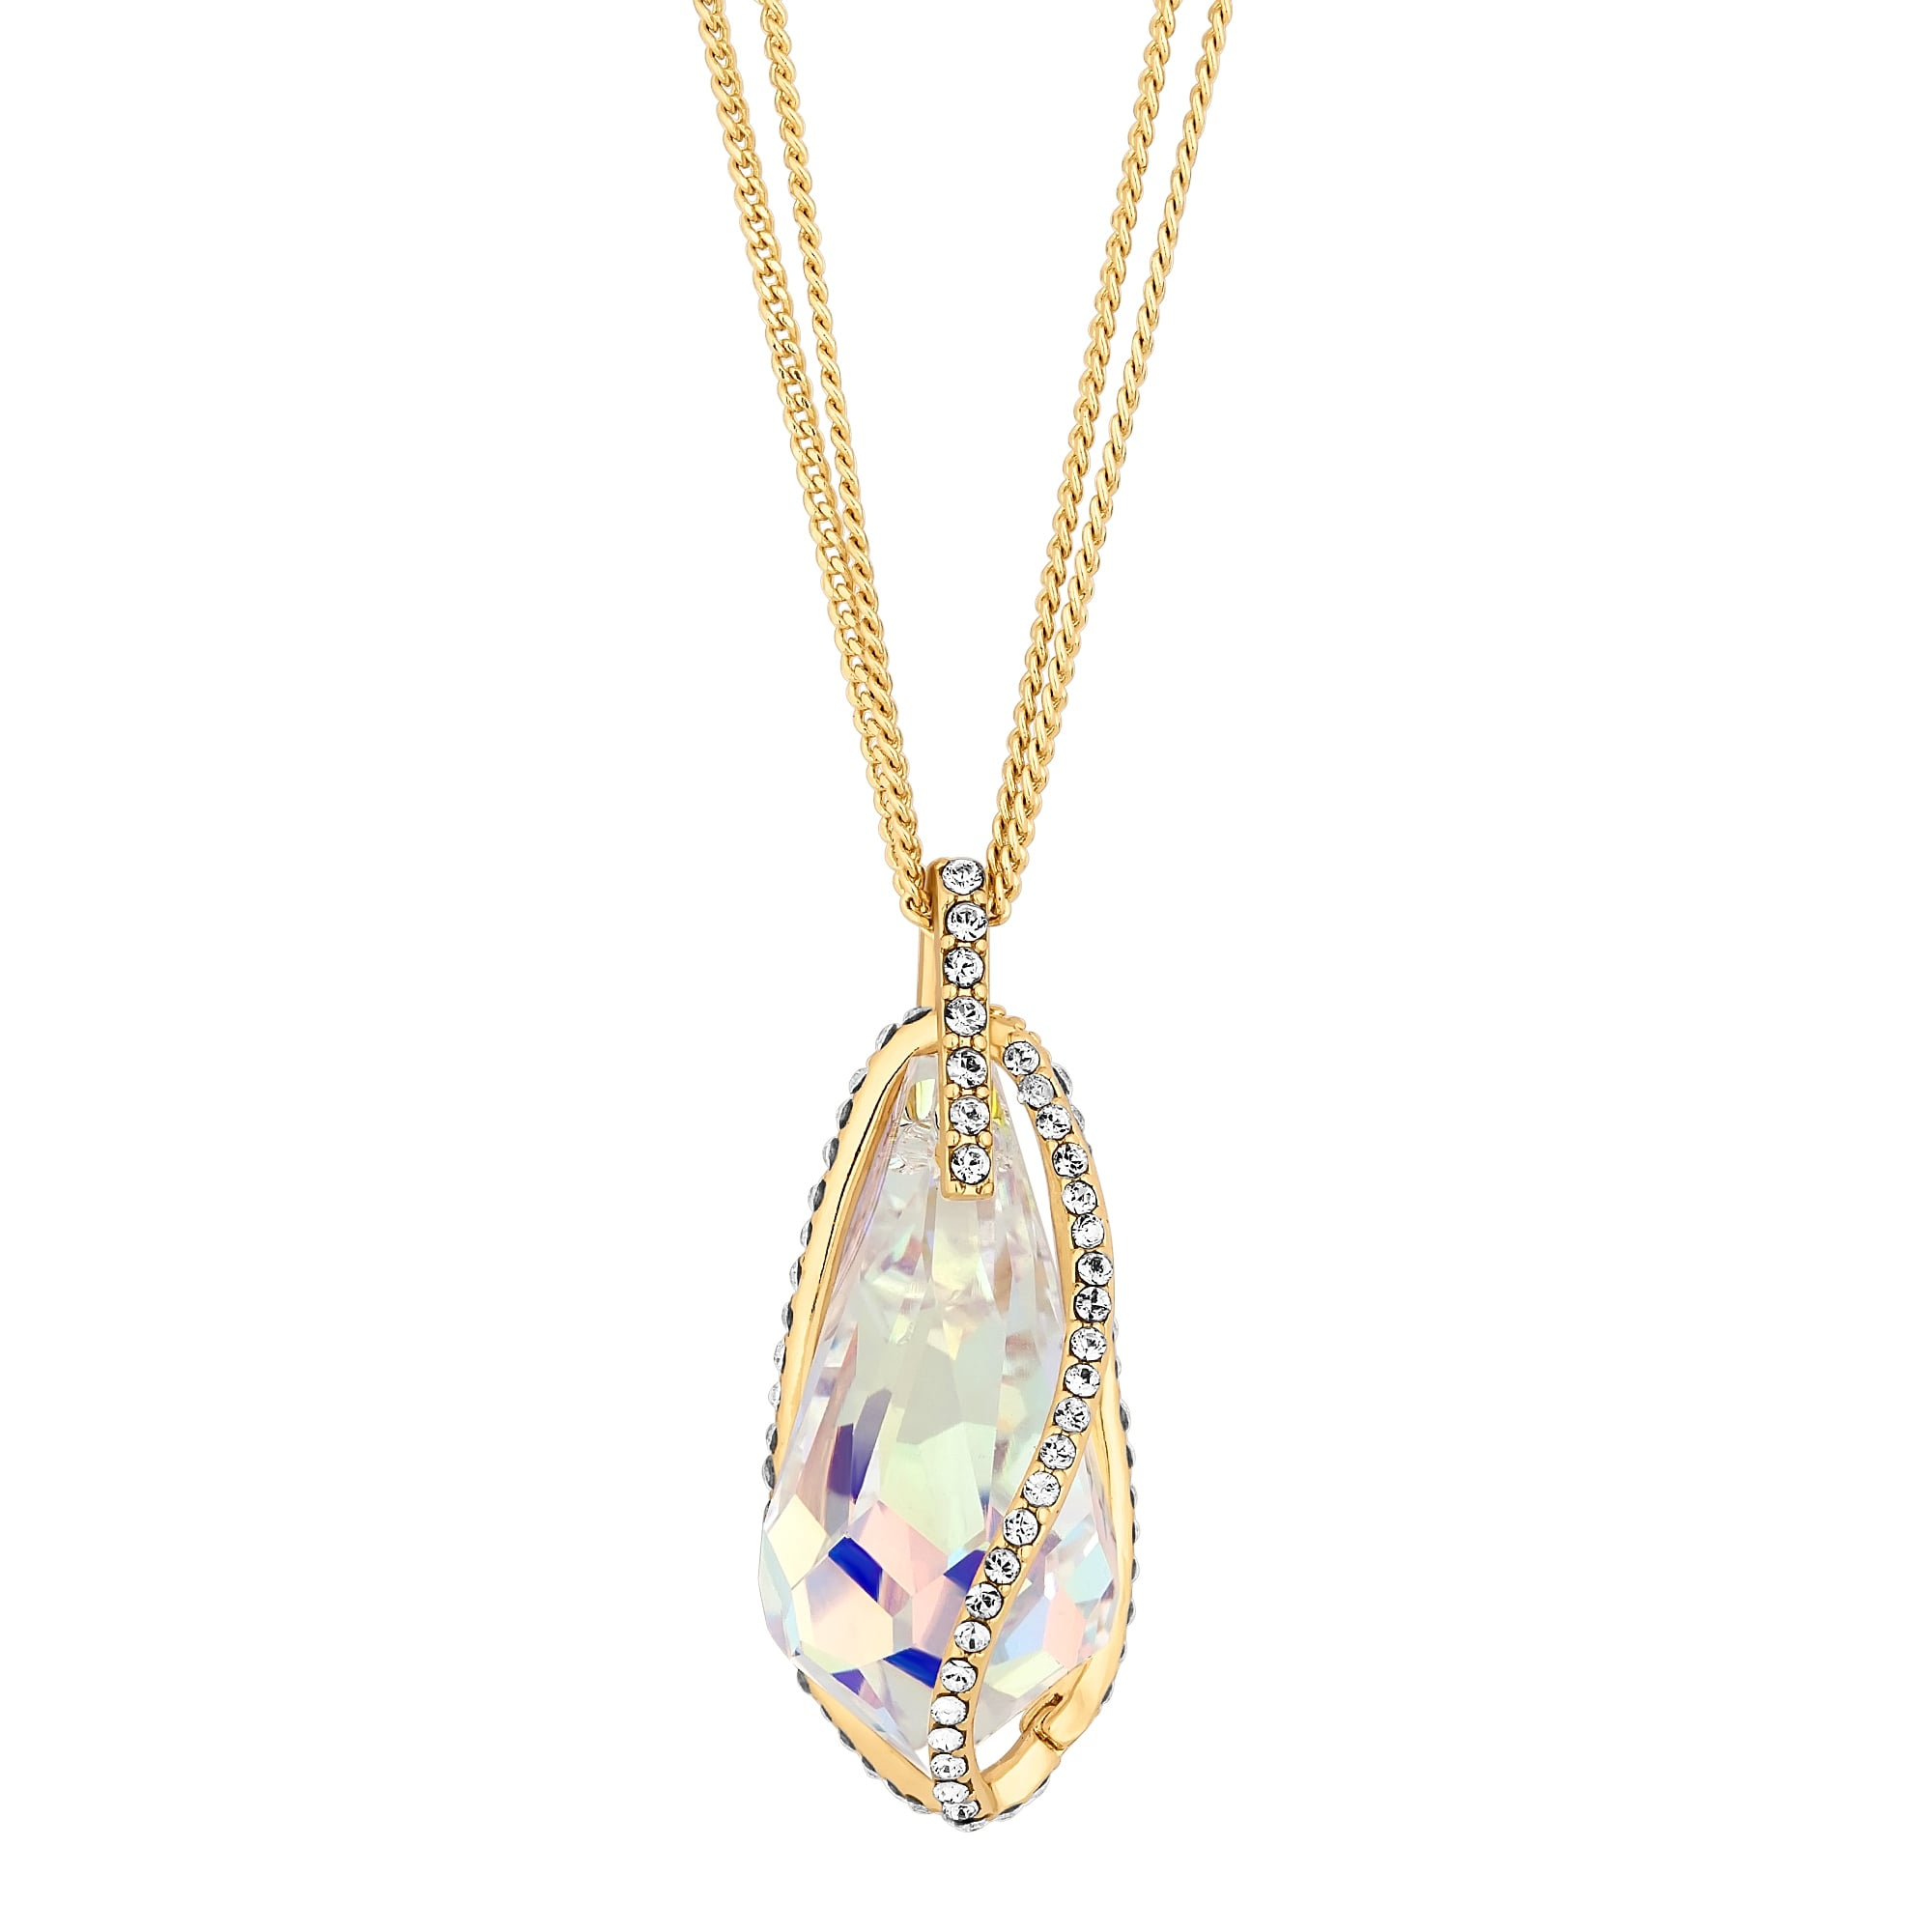 jewellery market crystal de fairtrade necklace swarovski womens art ethical pendant